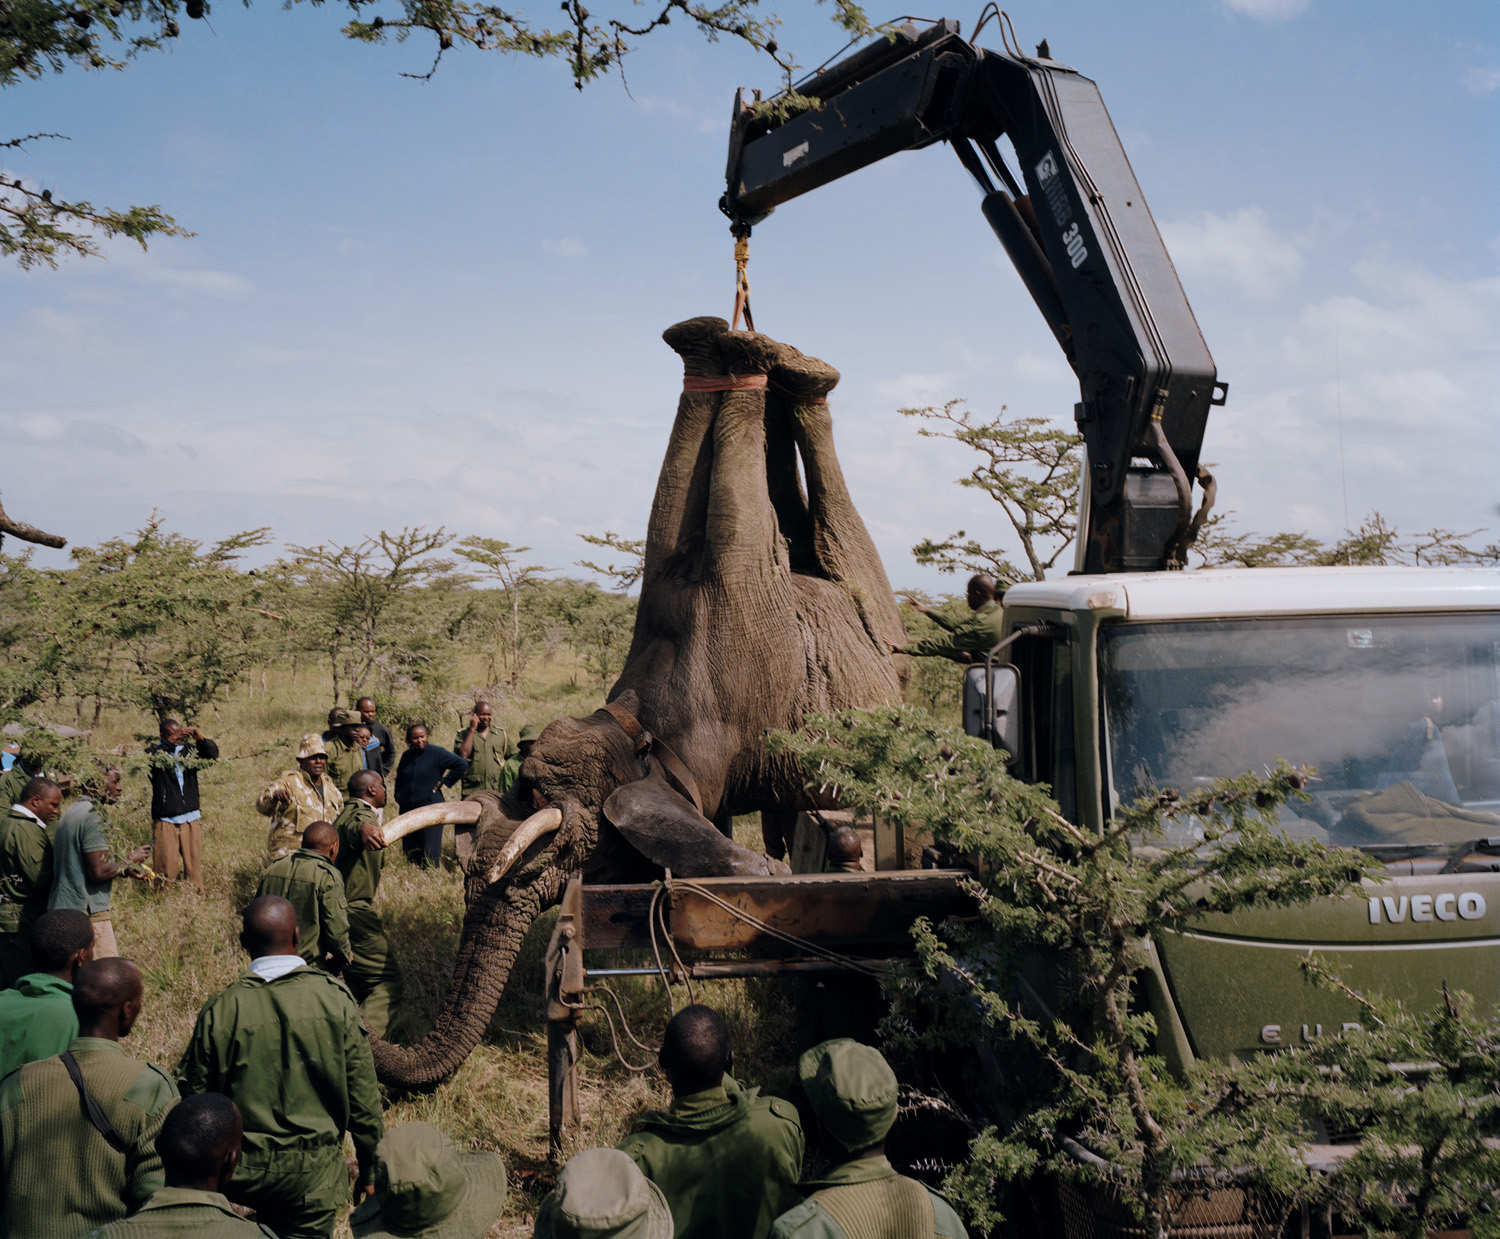 Wildlife rangers prepare to relocate an elephant from the Ol Pejeta Conservancy to Meru National Park. Elephants discover quite quickly that their tusks do not conduct electricity, and that if they  curl up their trunks they can quite happily break down electric fences that protect farms.